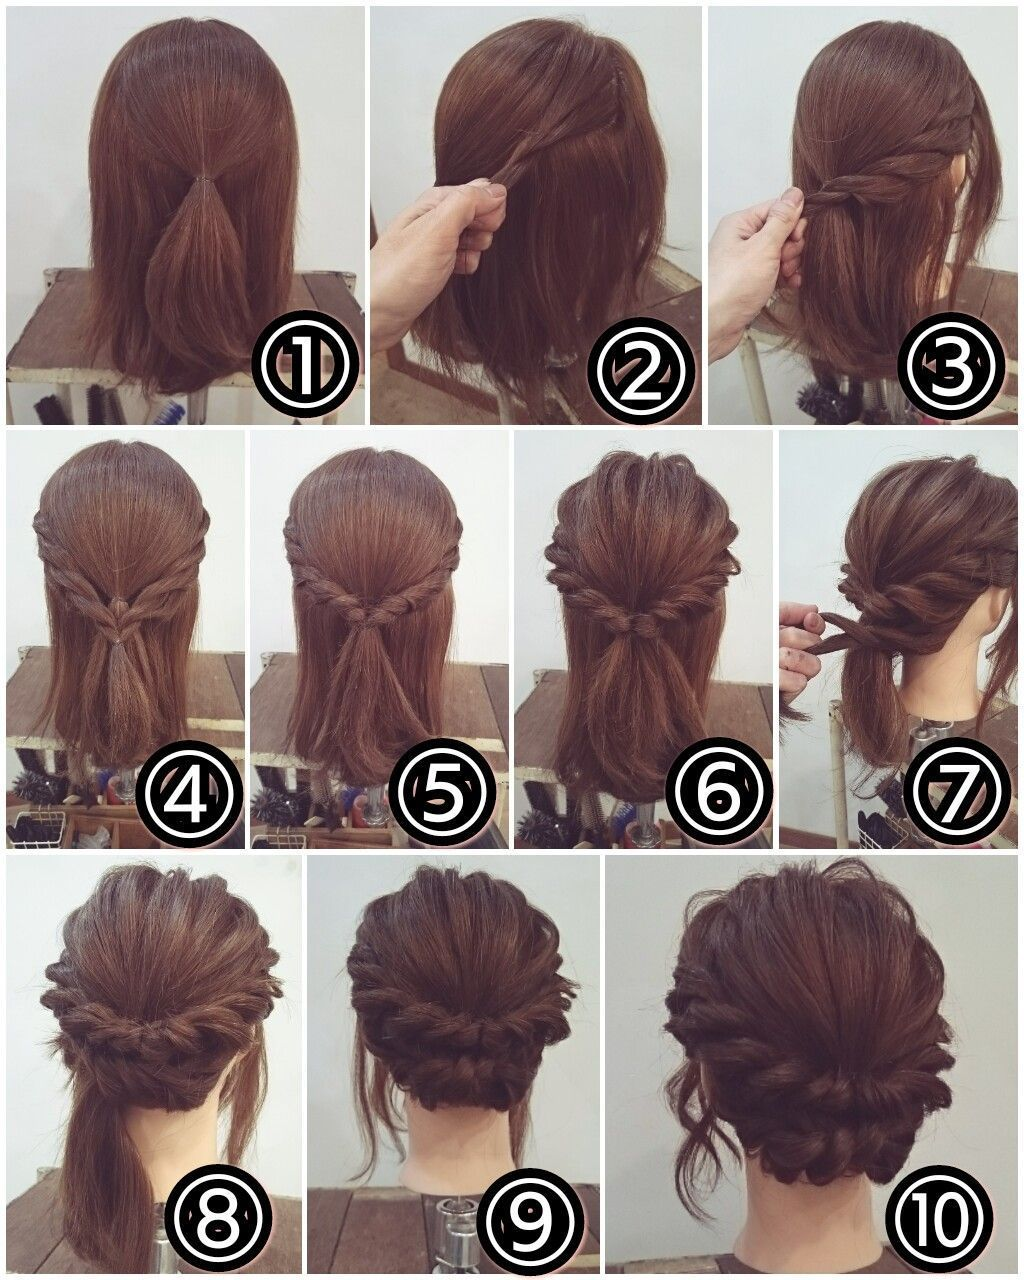 pin by poornima on hair do | acconciature capelli corti